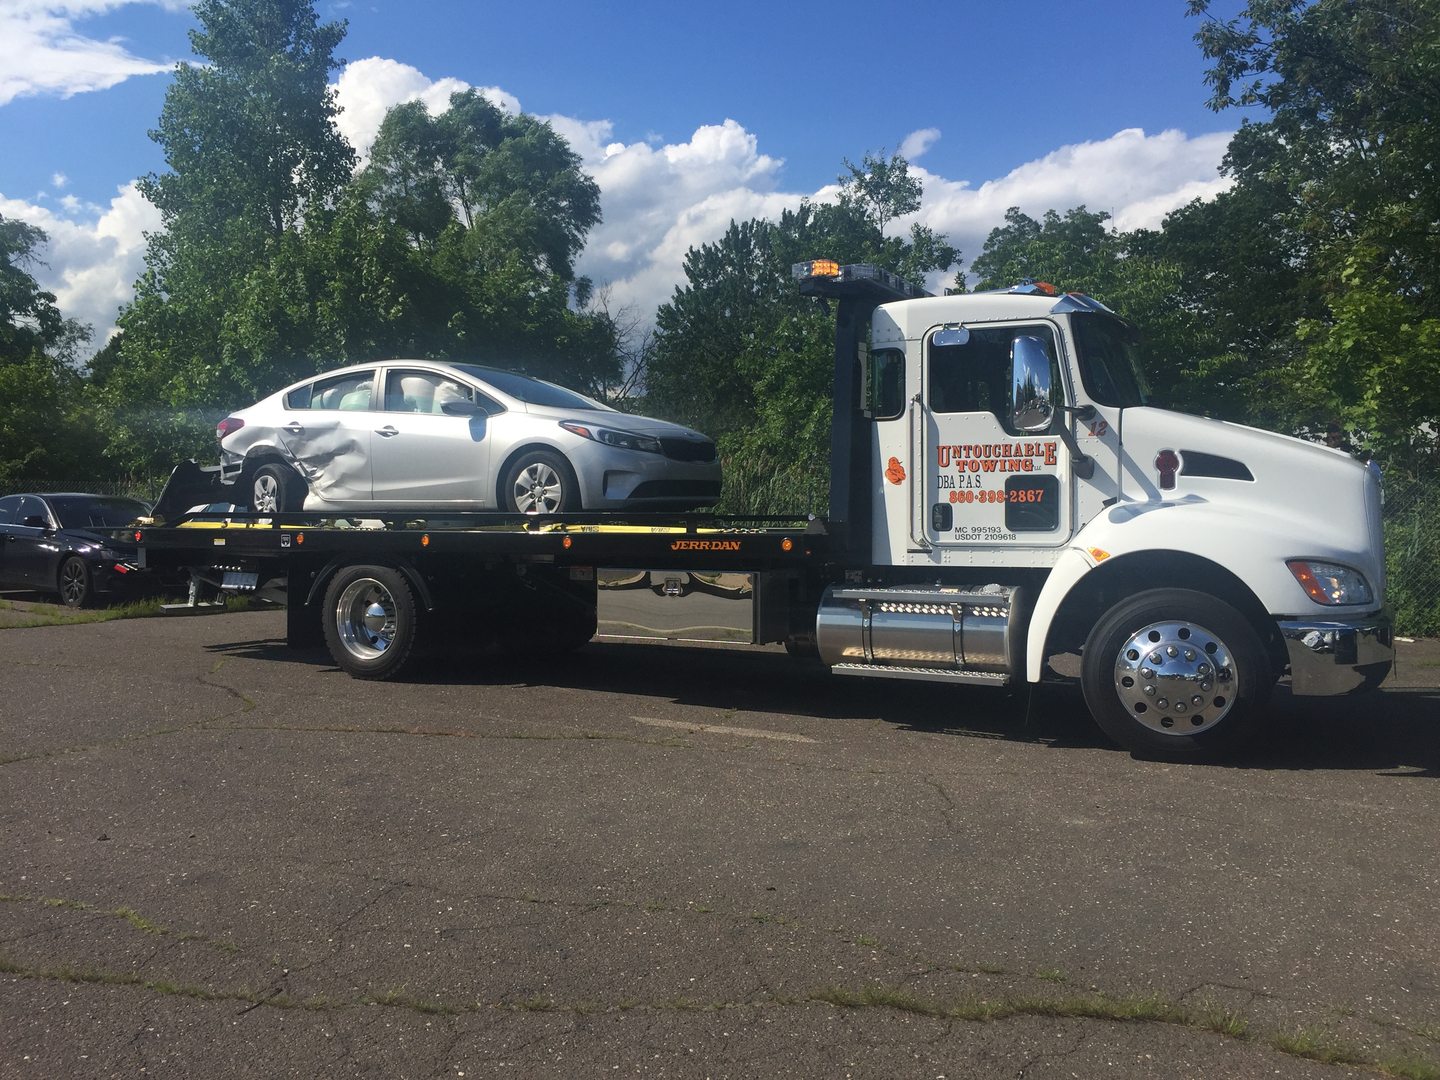 Tow Truck Connecticut Towing 1 860 398 2867 A Ct Towing Truck Company